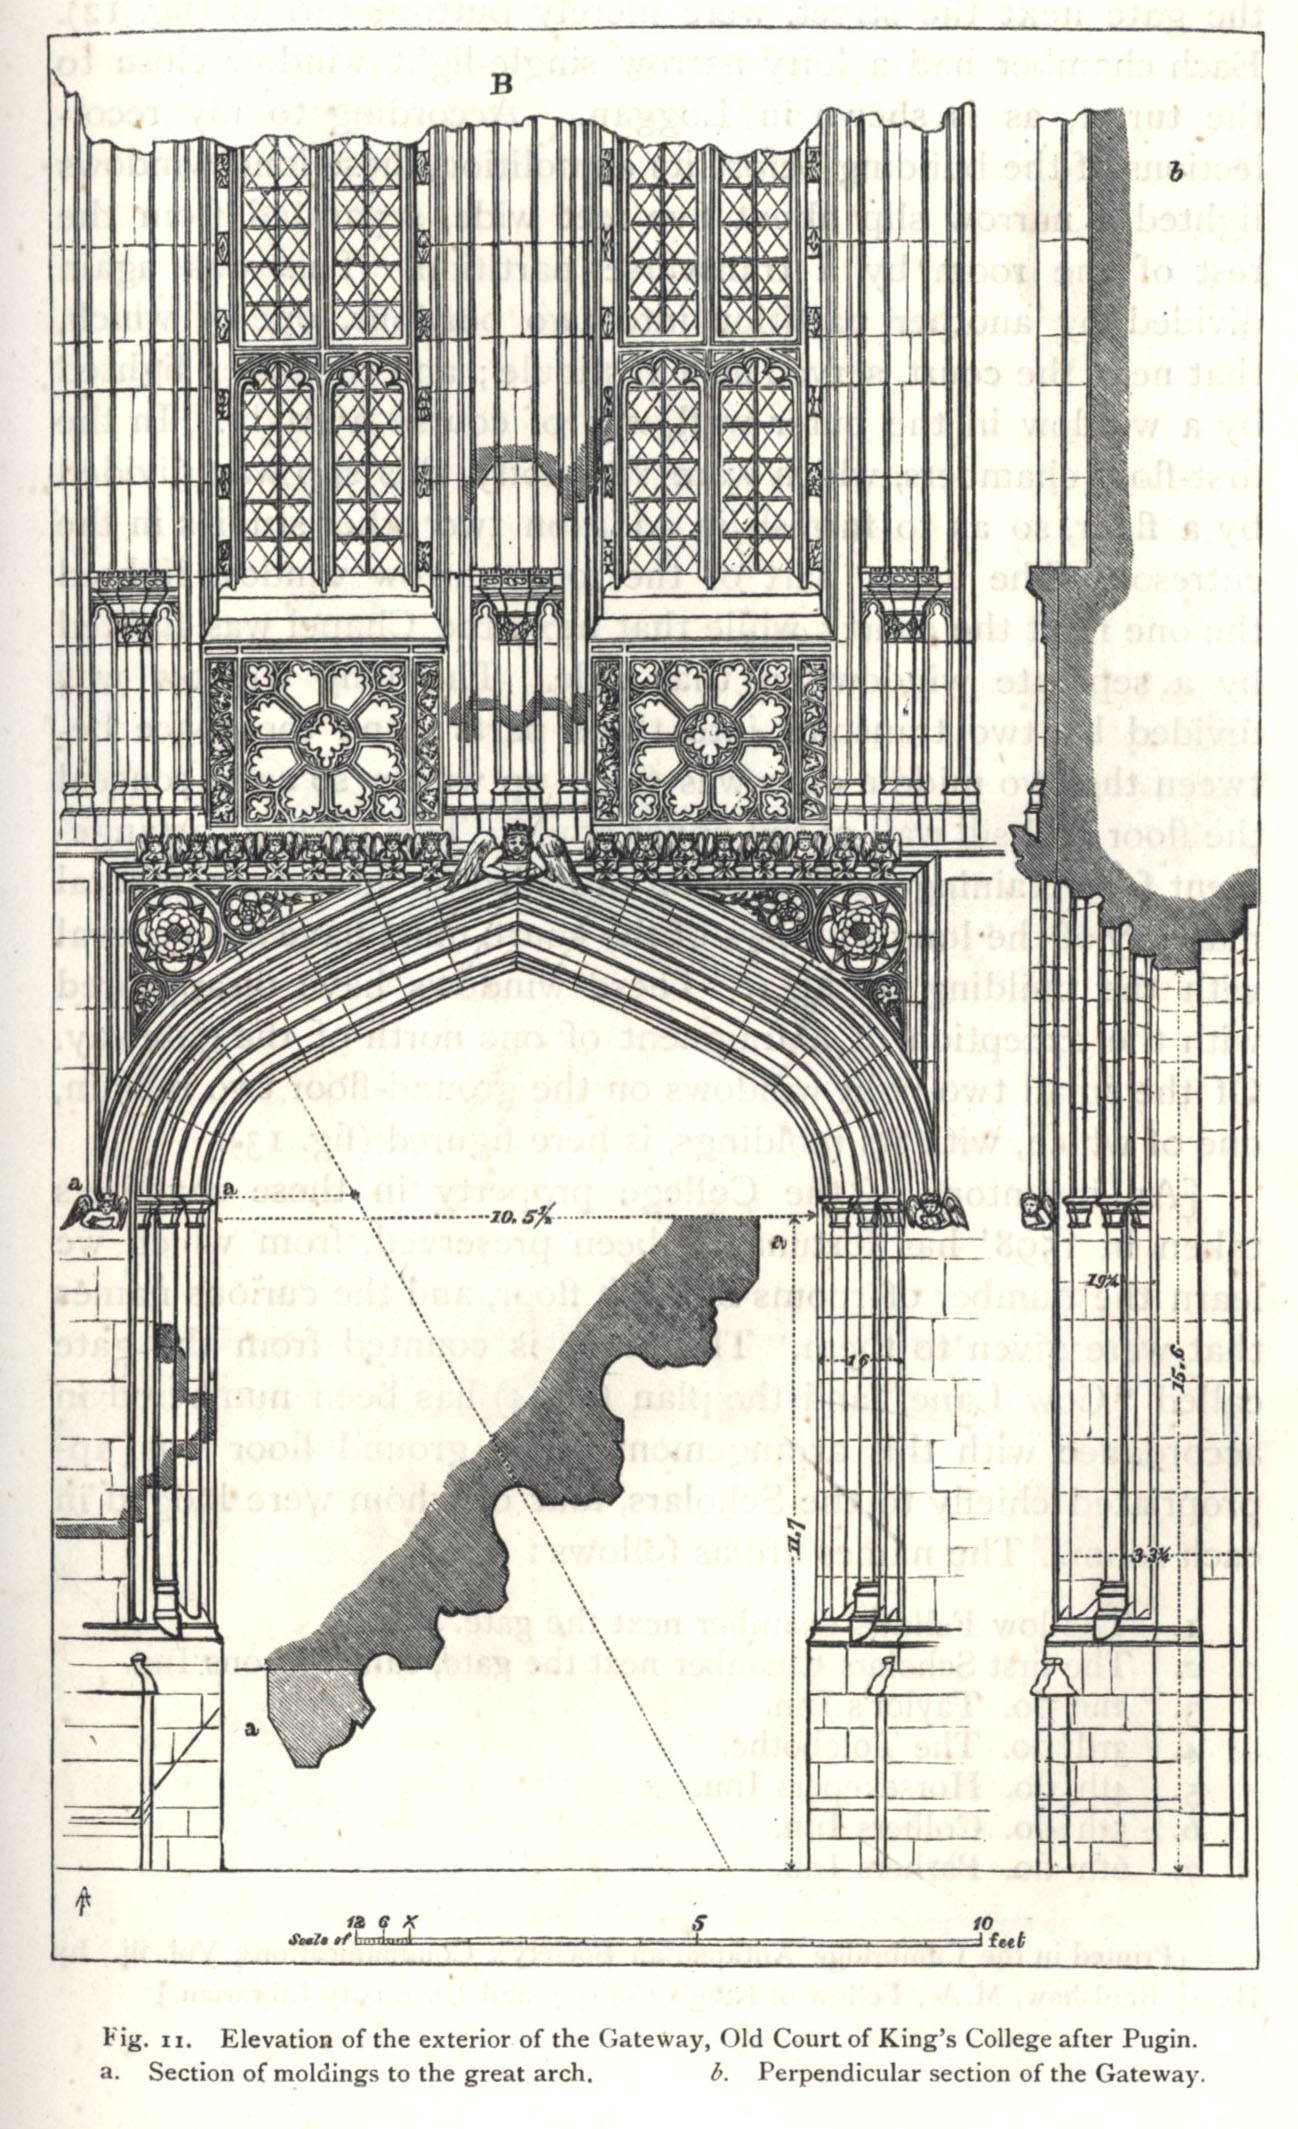 vation of the exterior of the Gateway, Old Court, after Pugin. [Willis and Clark, vol. 1, p. 329, fig. 11]